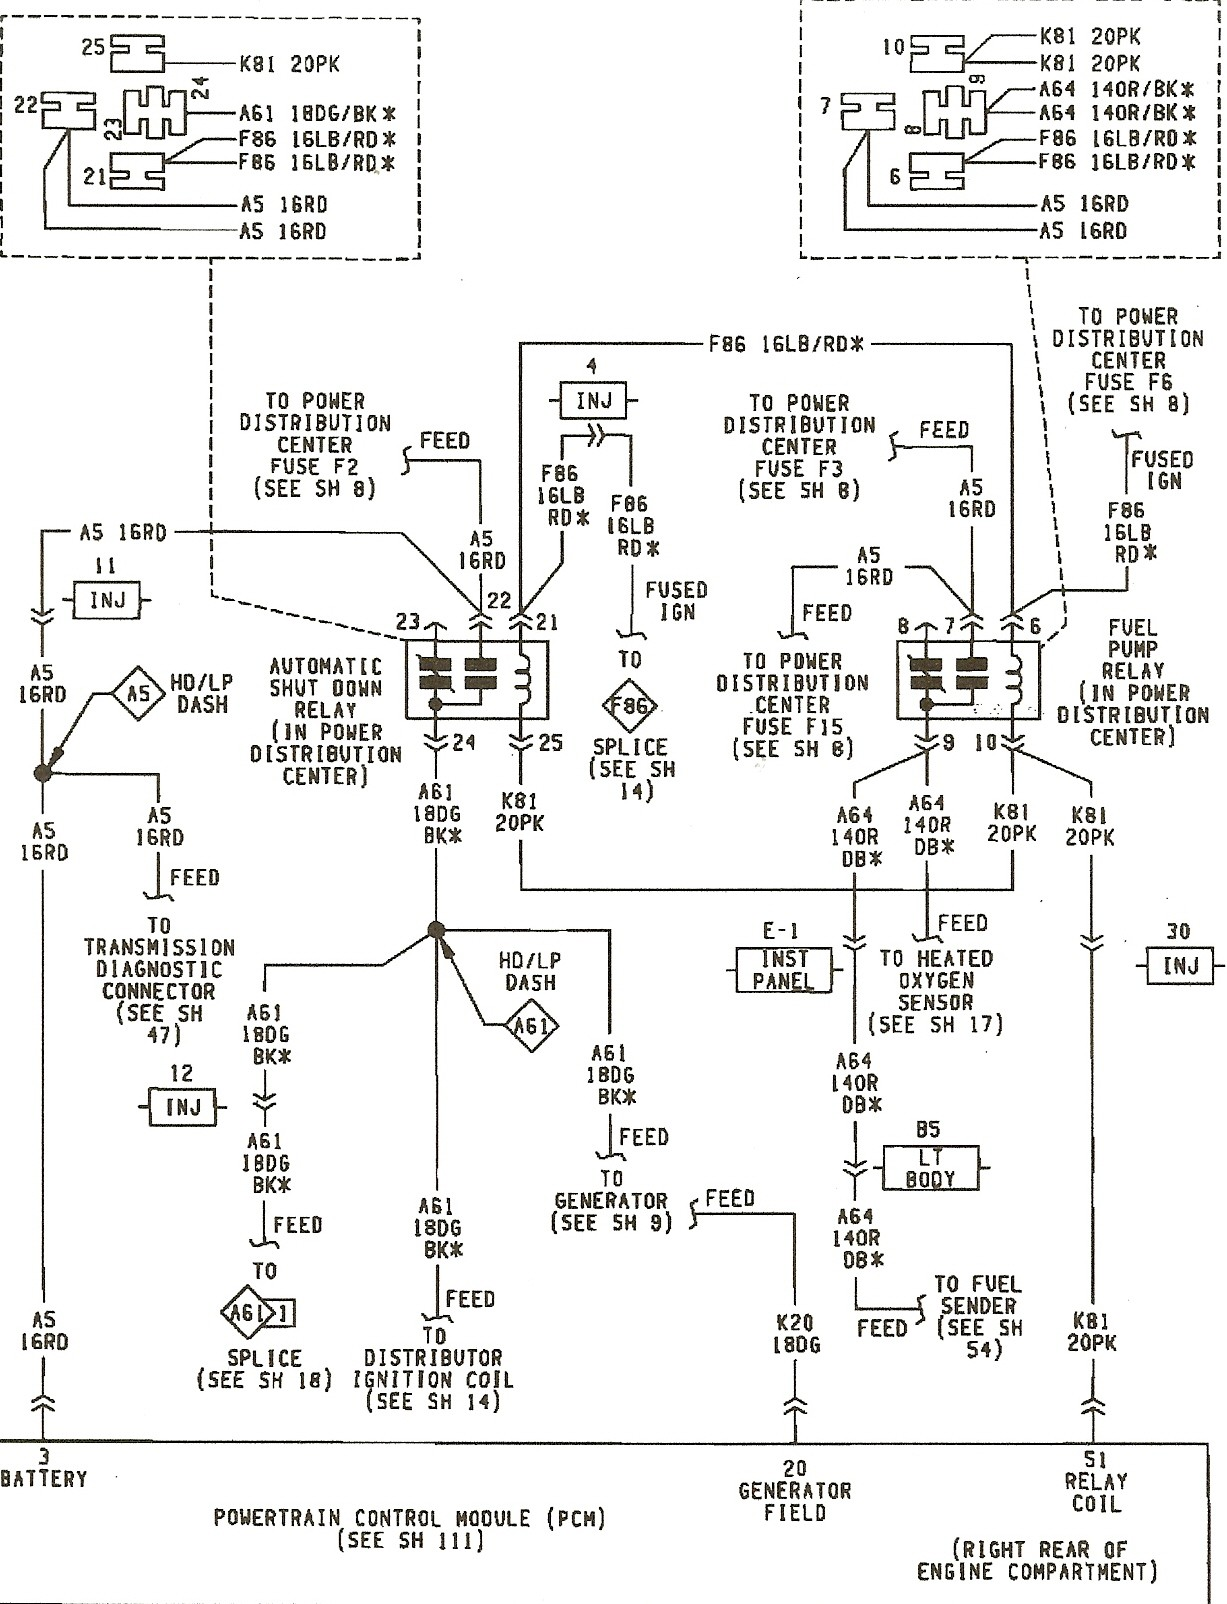 1995 jeep grand cherokee wiring diagram bones in hand and wrist by wrangler engine my